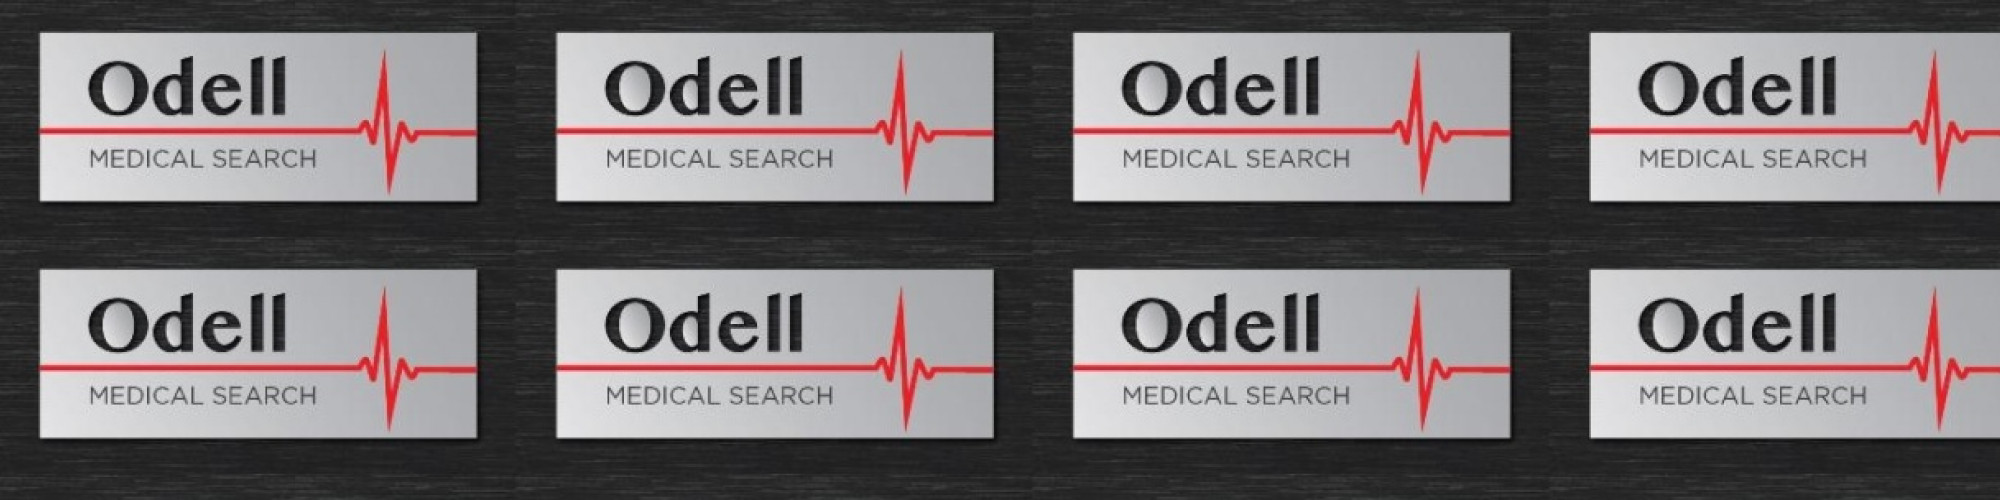 Odell Medical Search